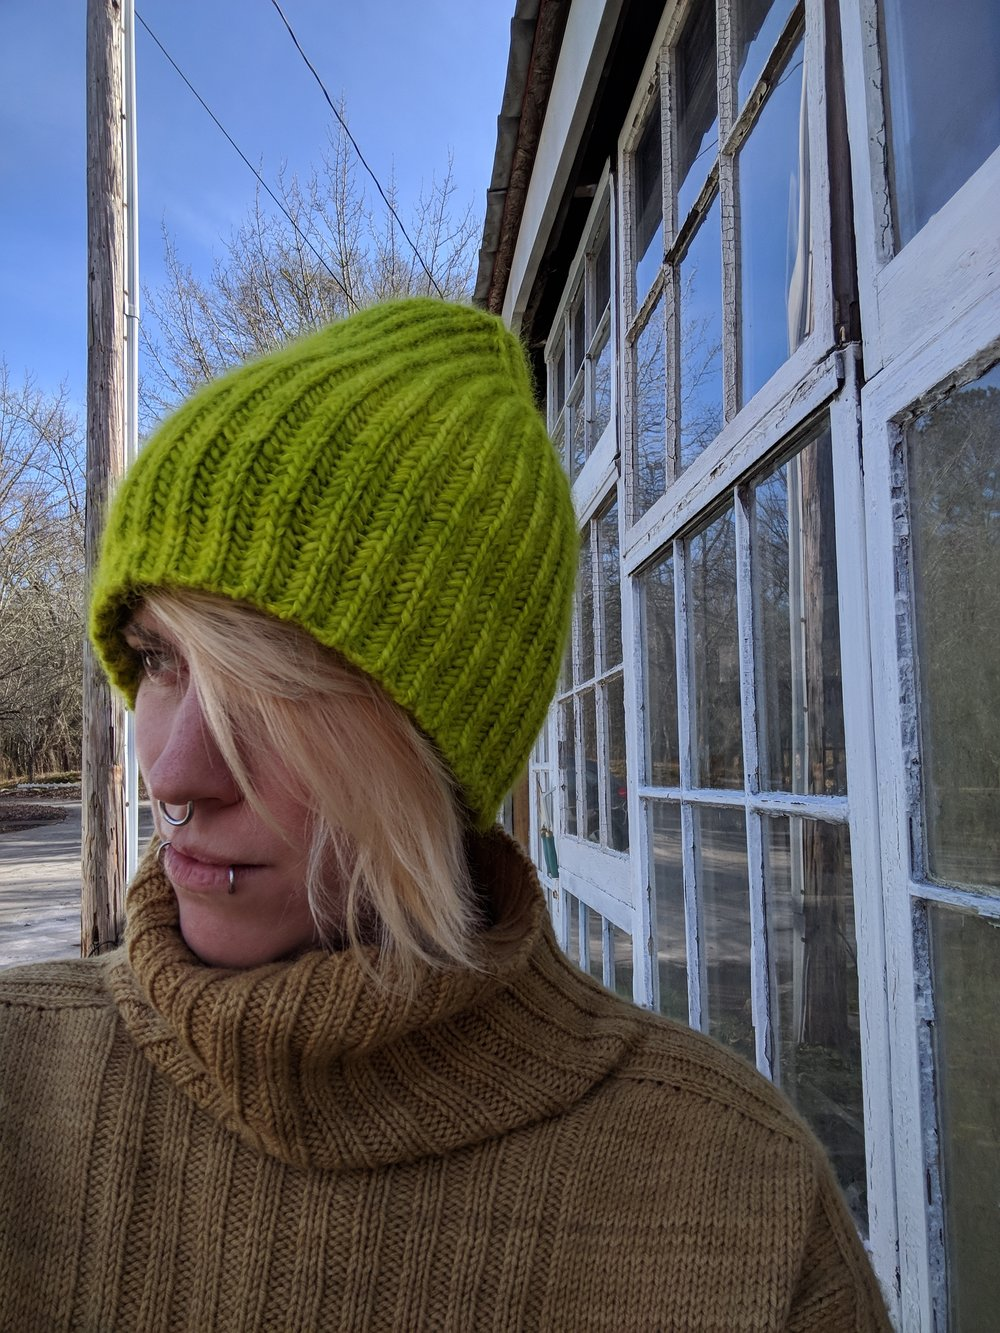 Meet Allison Jane! - Susan and Ellie met Allison Jane in a winery near the Montpelier Fiber Festival last summer. She was knitting and we handed her our card not even realizing the scope of her talents! Since then, we've learned that she is a world traveler and has been published in PomPom Quarterly, Interweave Knits, Berroco Porfolios, Quince & Co.,and many other knitting publications.Find out more about her and her original designs on her Ravelry page.